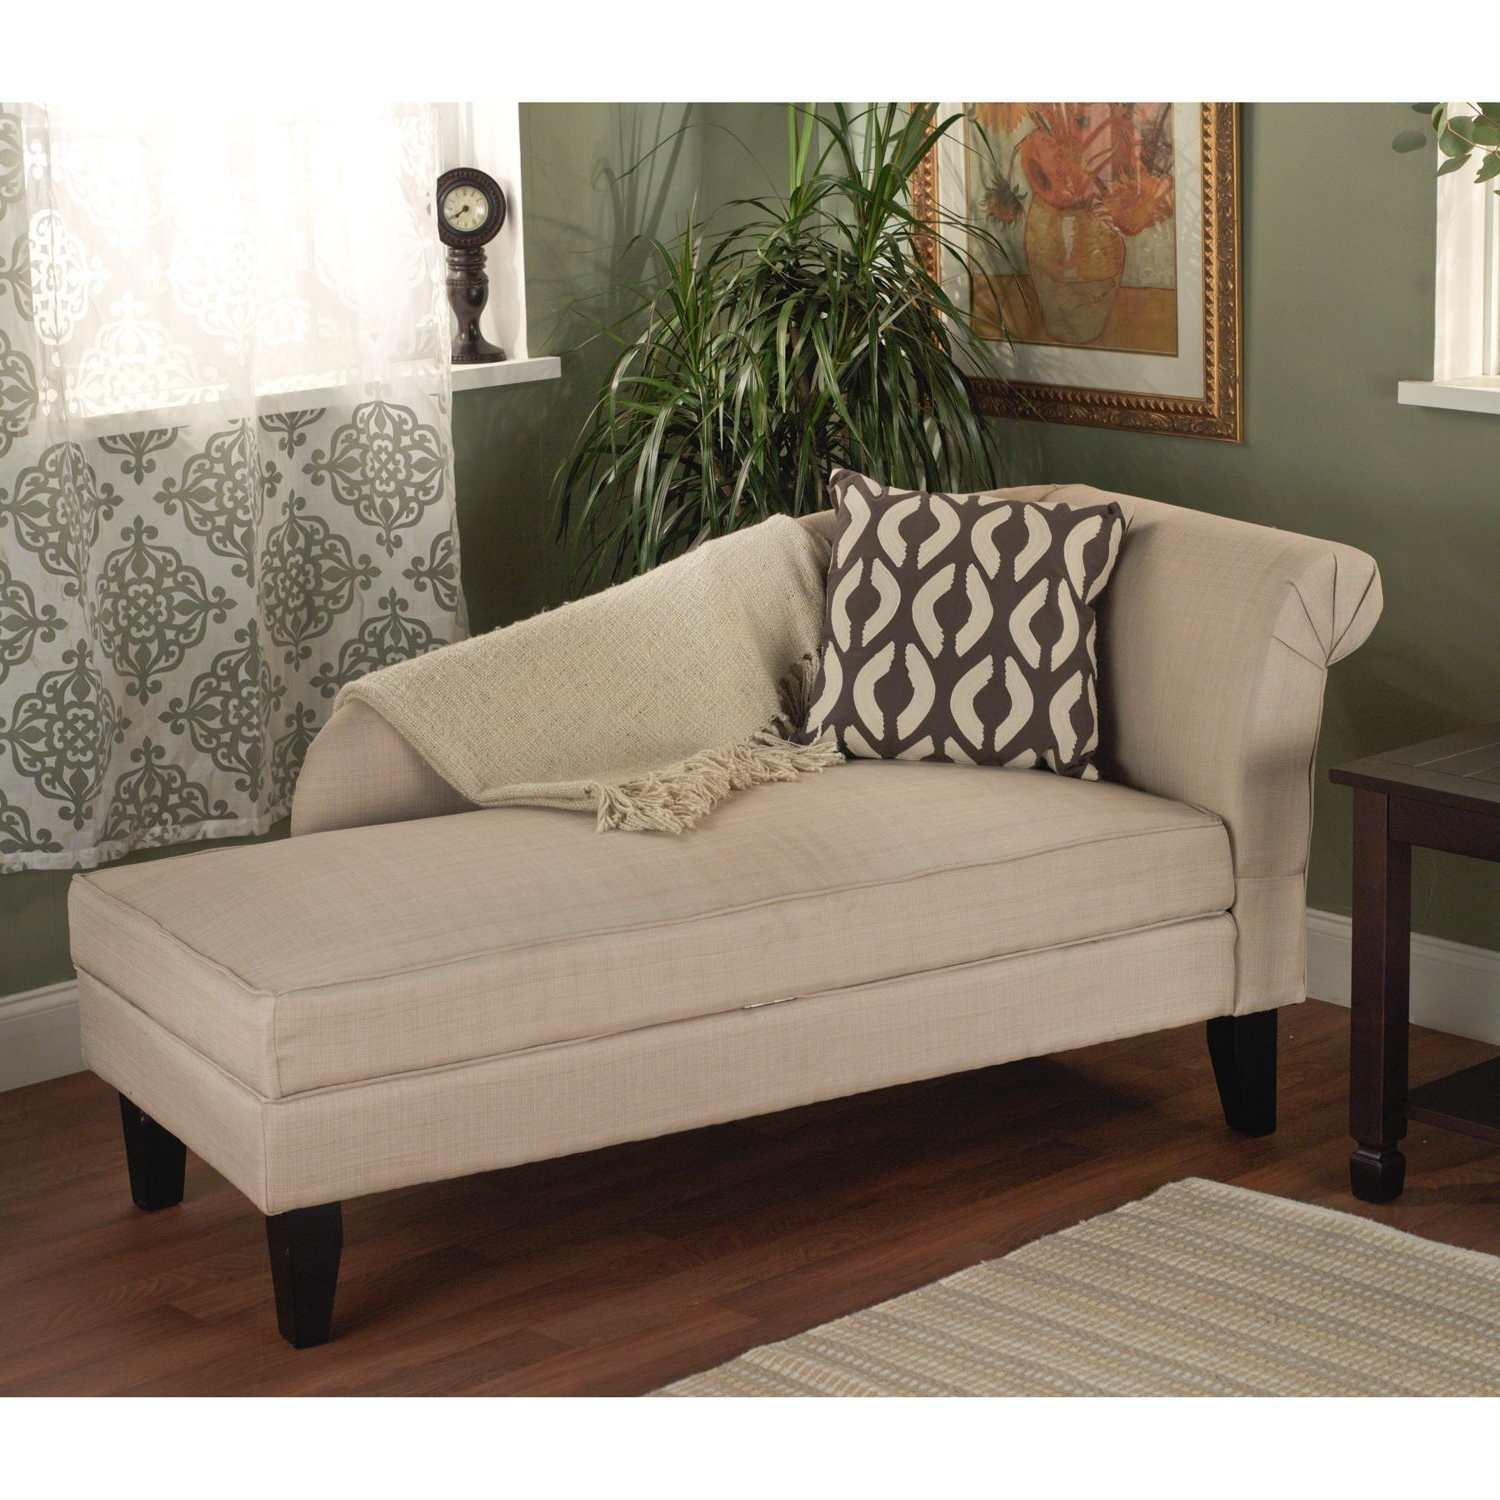 Target Marketing Systems,leena Storage Chaise Lounger  Beige Throughout Recent Chaises For Bedroom (View 11 of 15)